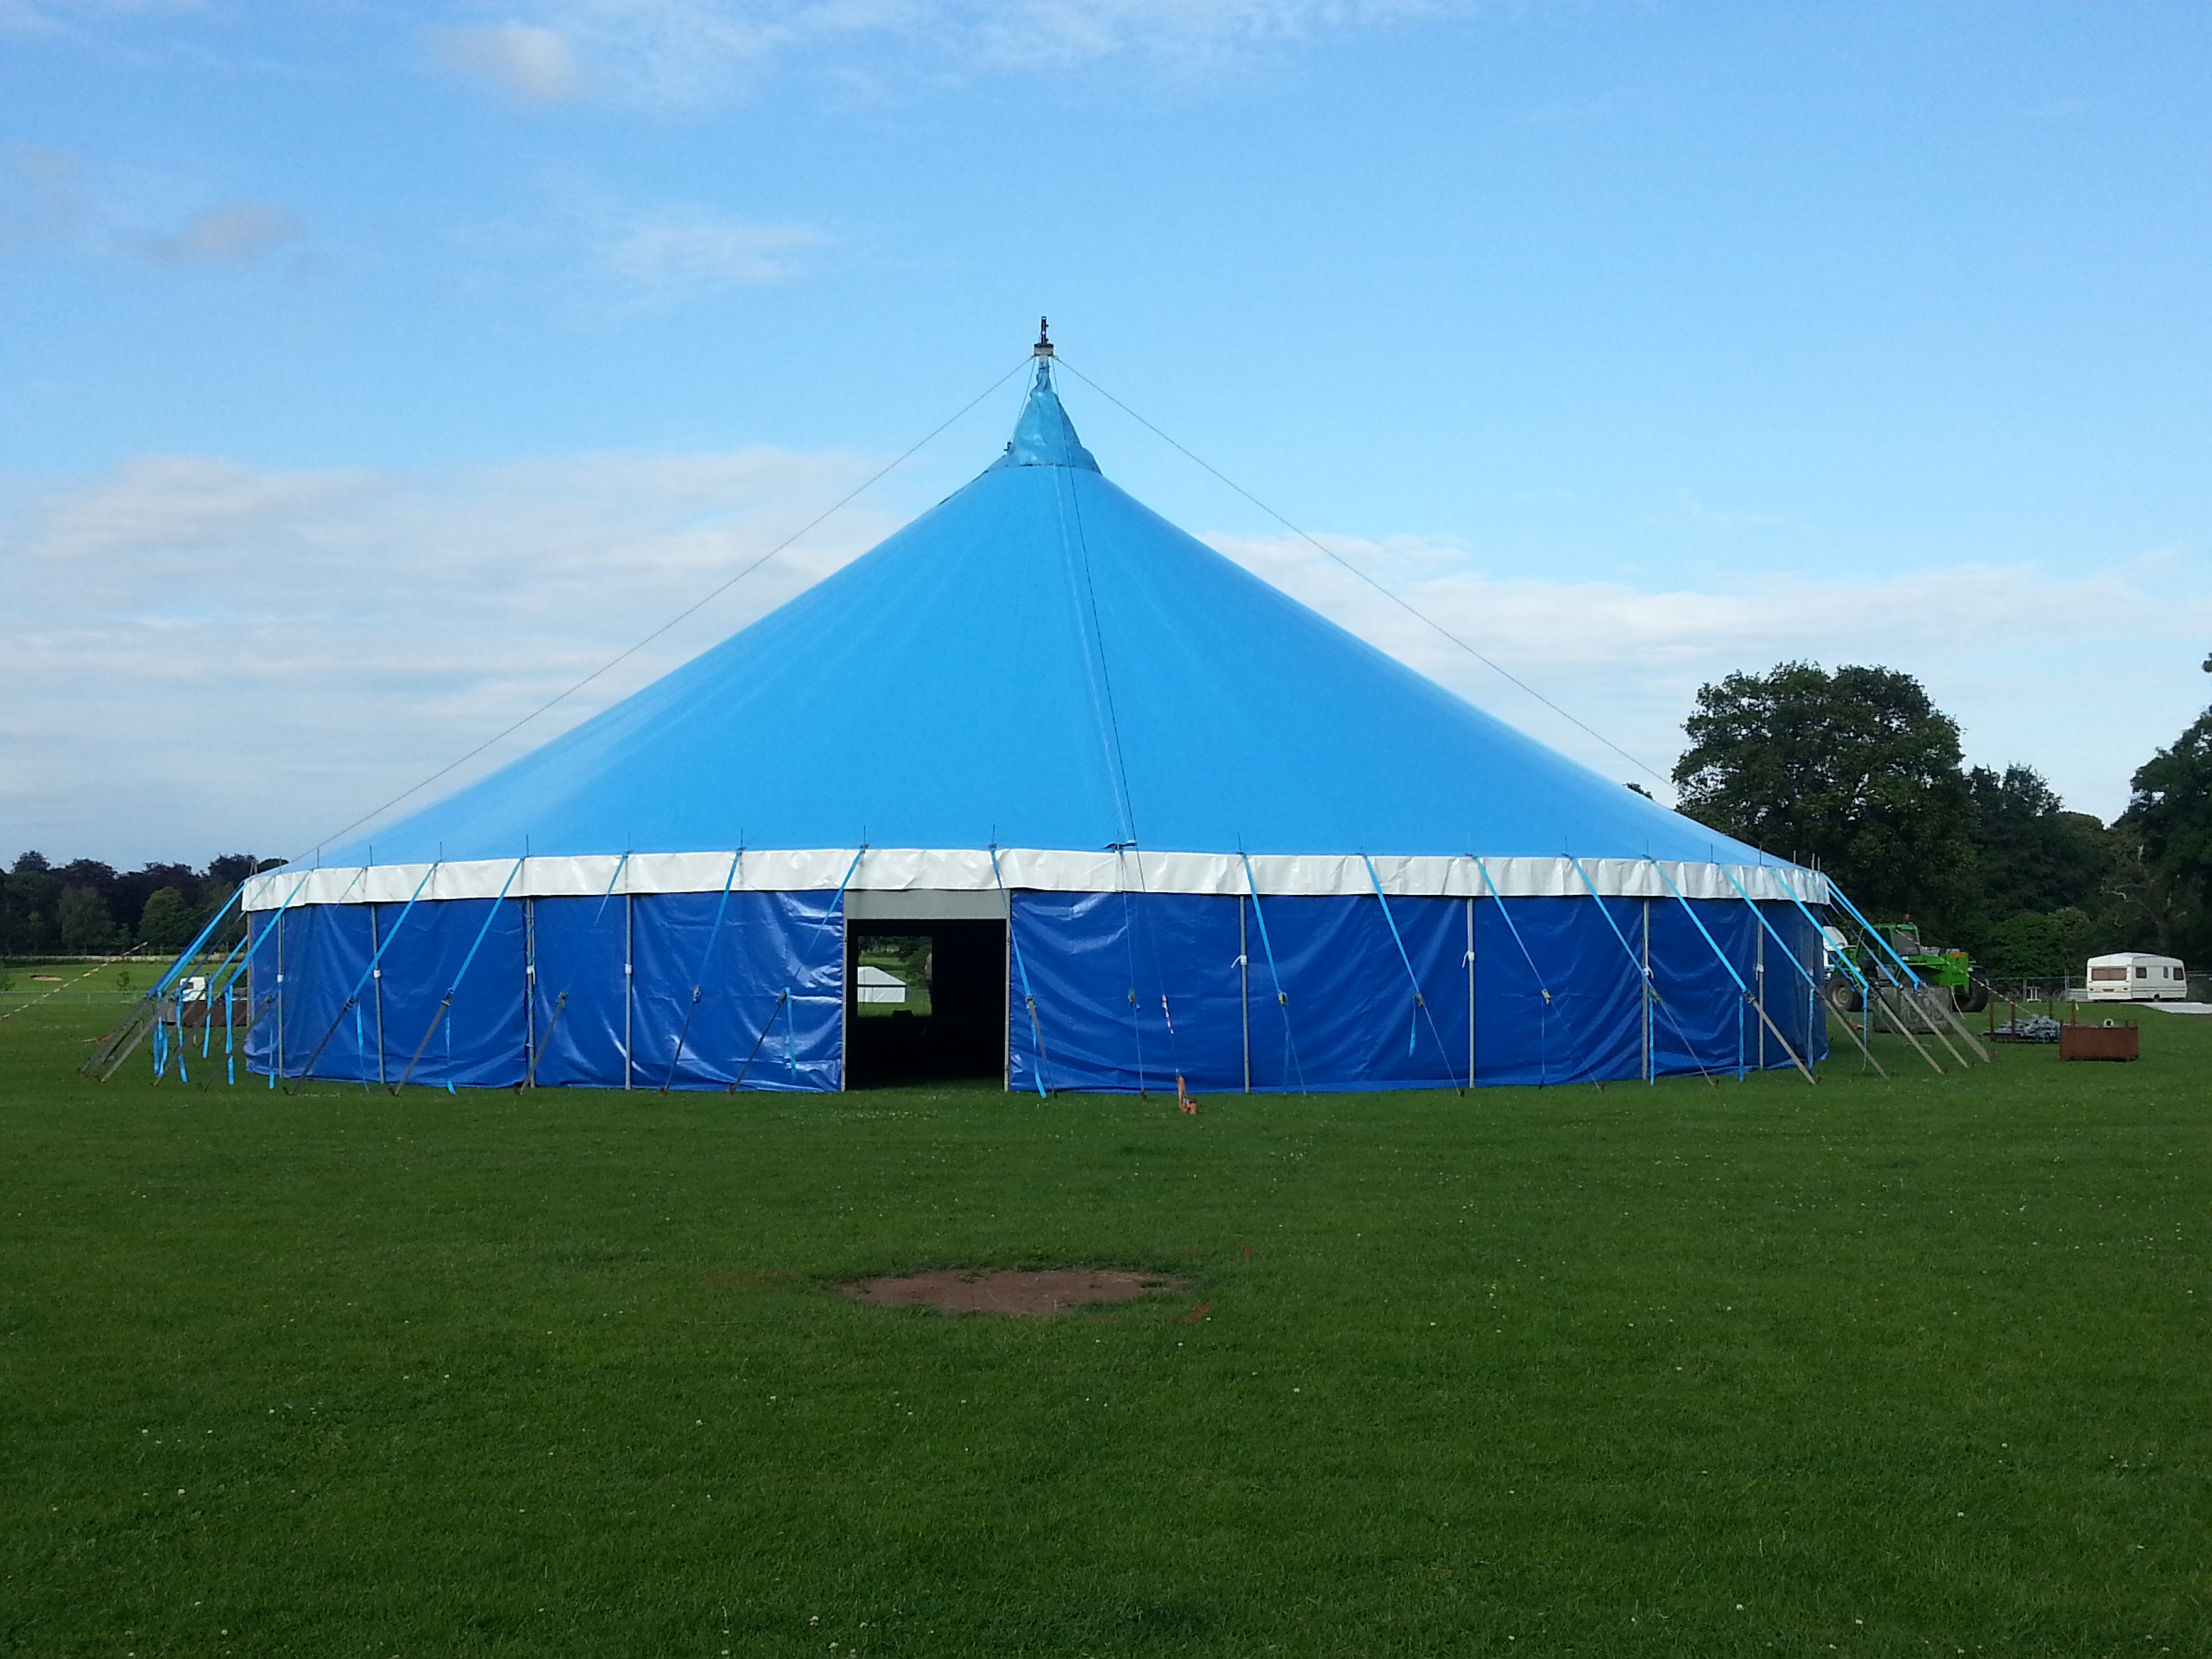 We now have a brand new replacement Blue Big Top Tent which has incorporated modern design enhancements over the original. This popular big top tent has ... & New Blue Tent | Albion Woods